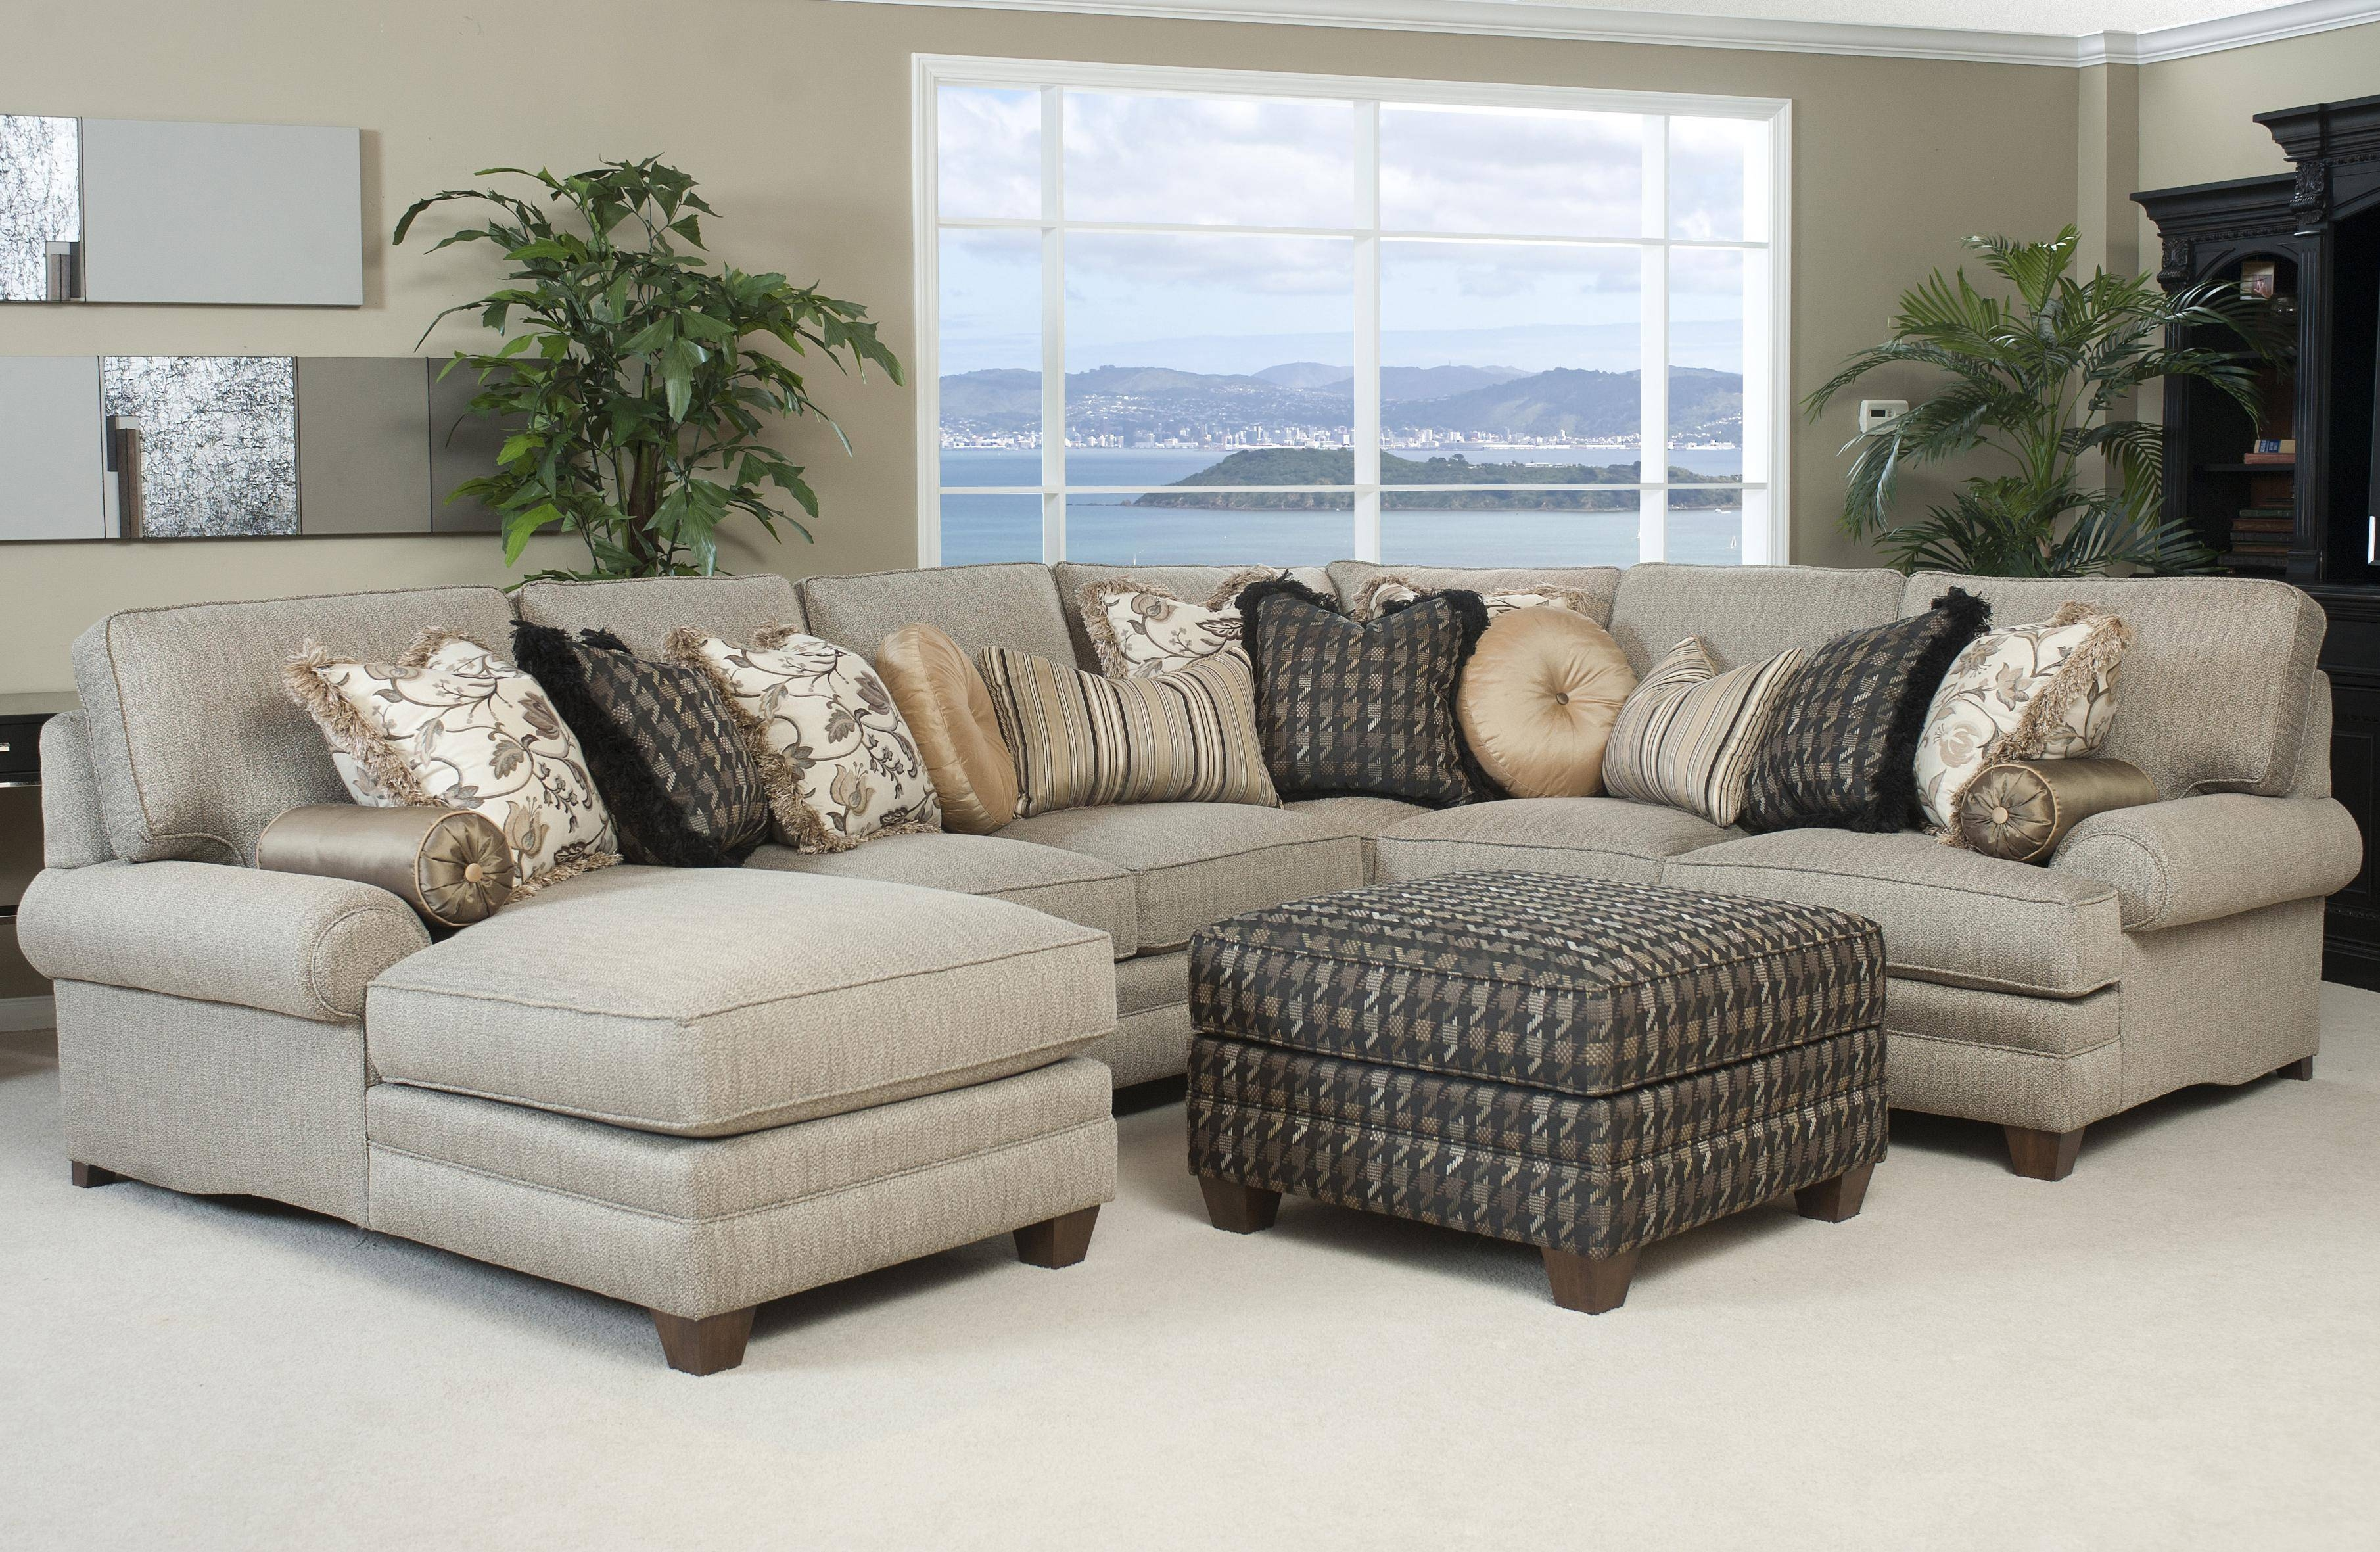 Comfy Sectional Sofas - Tourdecarroll for Comfy Sectional Sofa (Image 9 of 30)